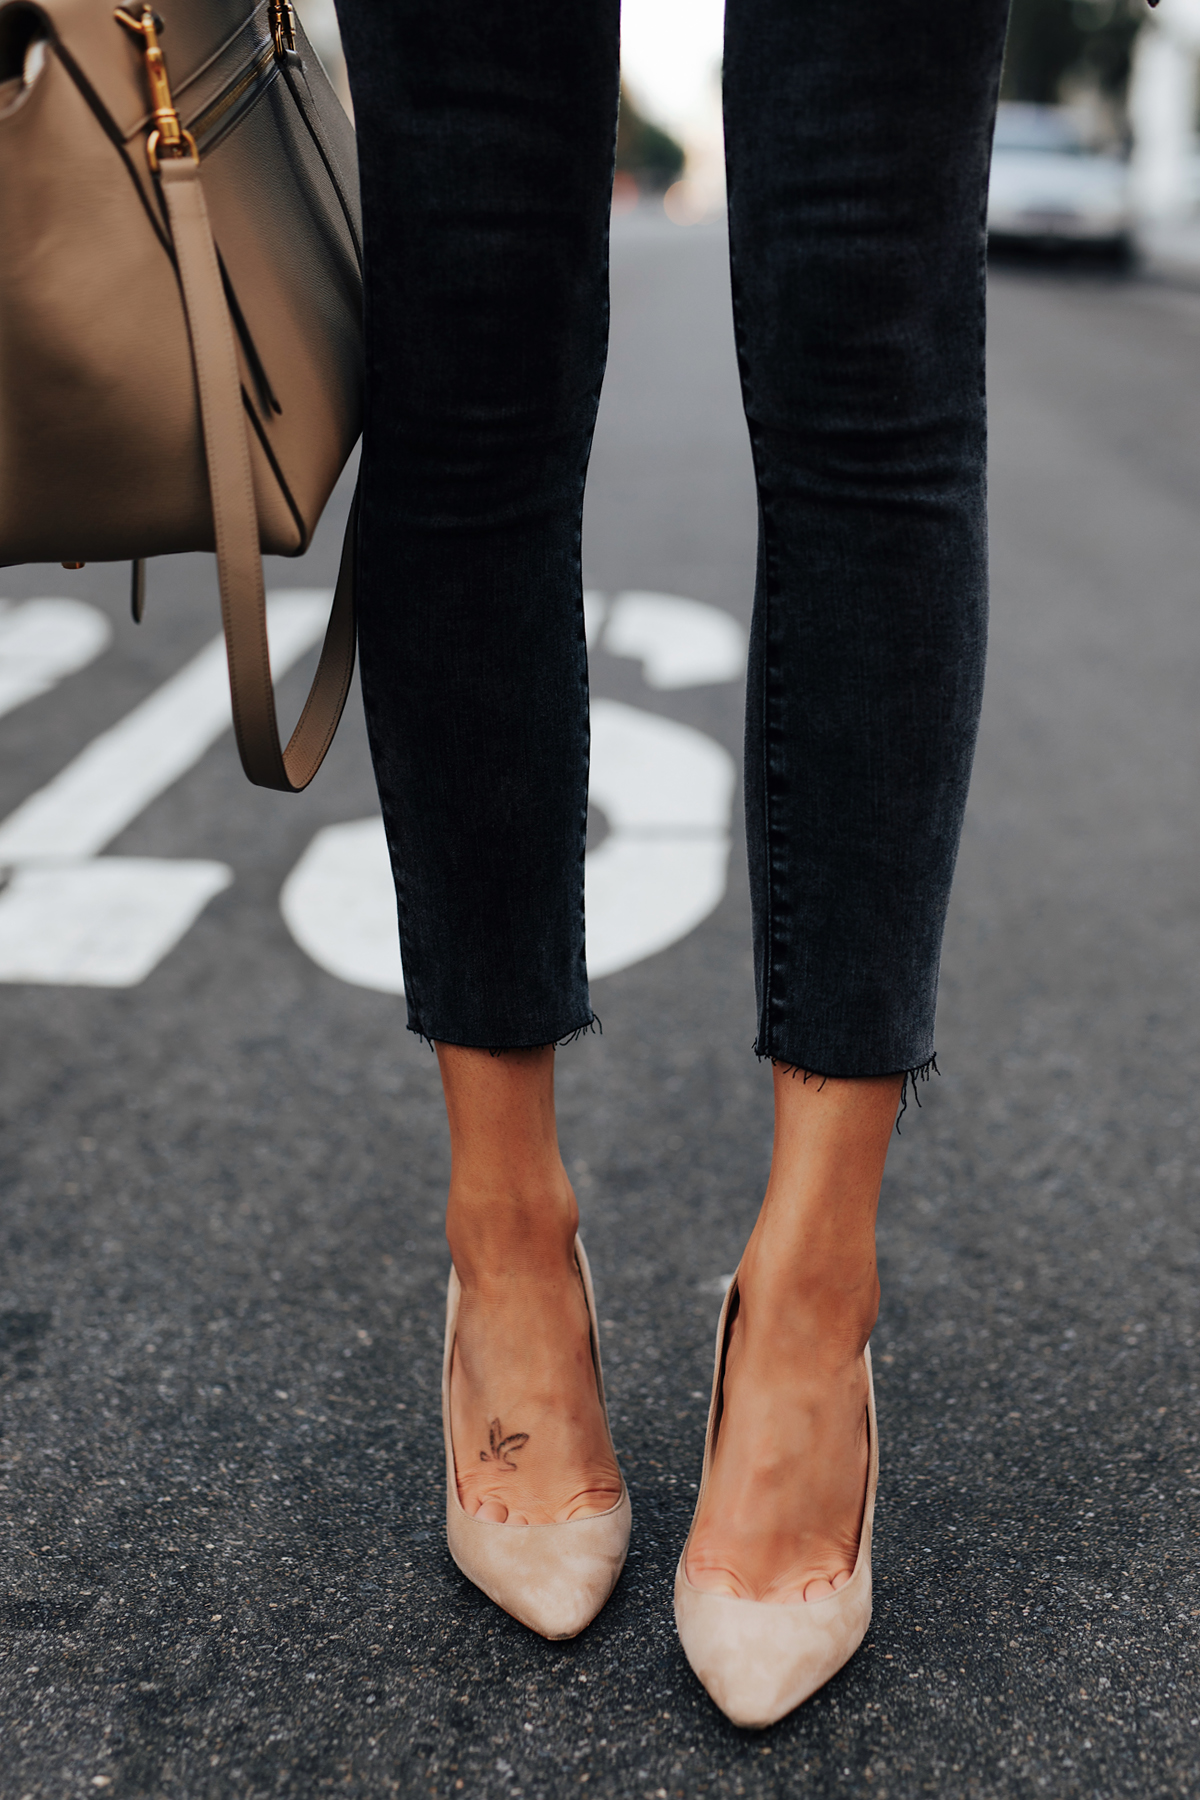 Abercrombie Black Skinny Jeans Jimmy Choo Nude BB Pumps